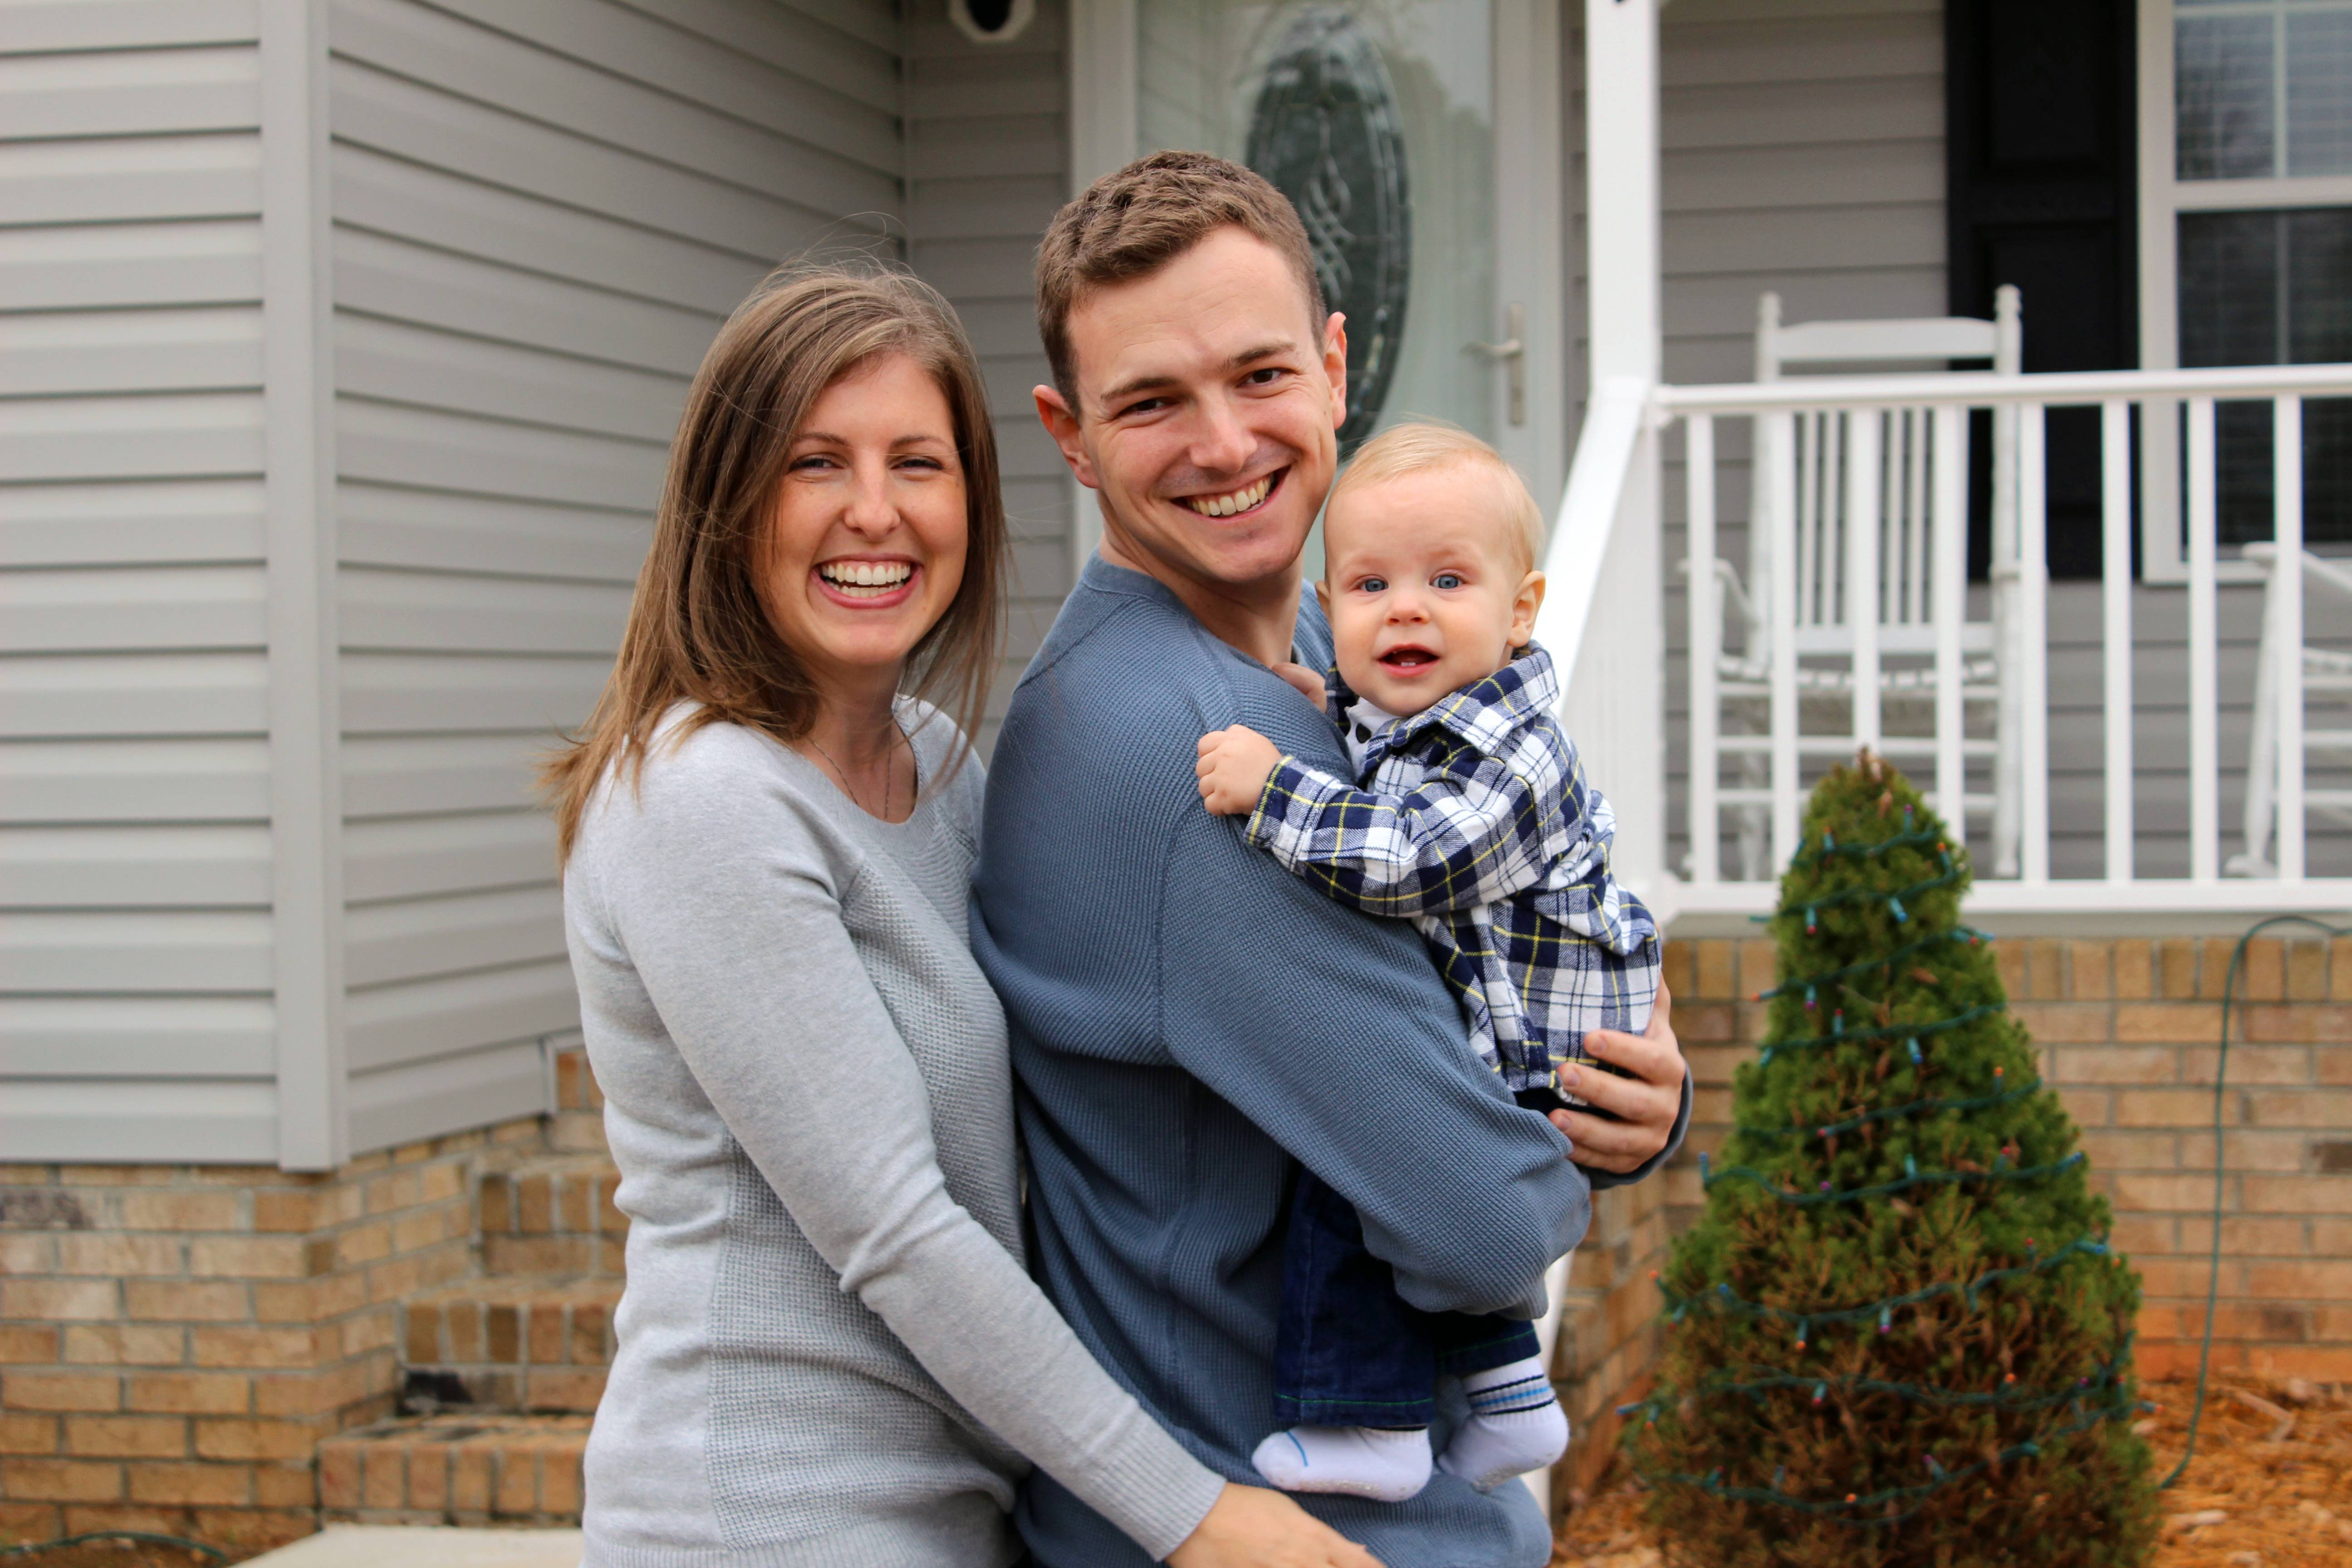 This is the Williamson family: from left, wife Tricia Williamson, husband Mike Williamson and their 1-year-old son Adam. Tricia, 30, quit her job as an editor and producer at a TV station after crunching the numbers and realizing her salary after the birth of her son a year ago would go primarily to her commuting and child care expenses.